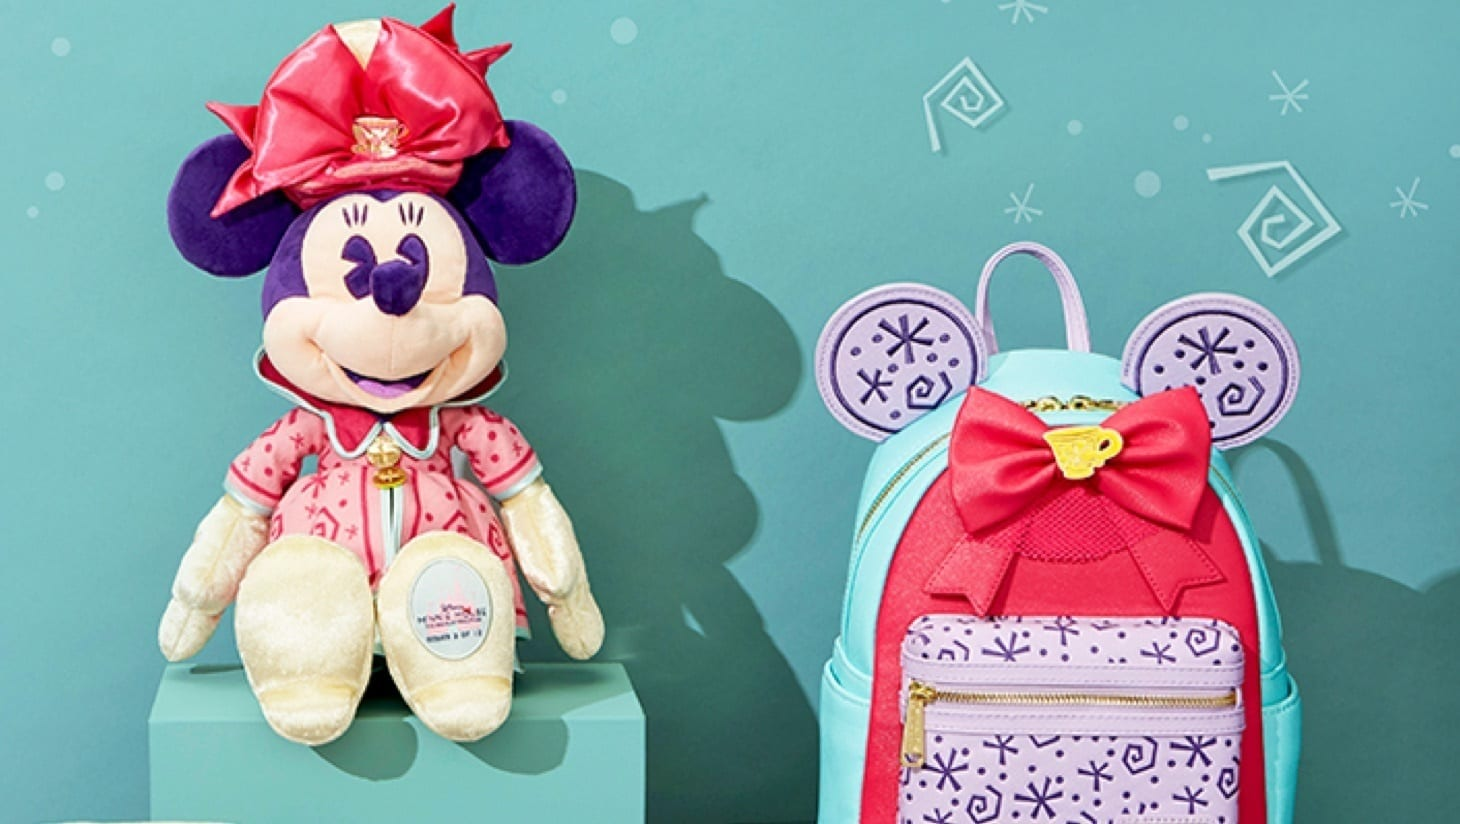 Minnie Mouse The Main Attraction maart Collectie